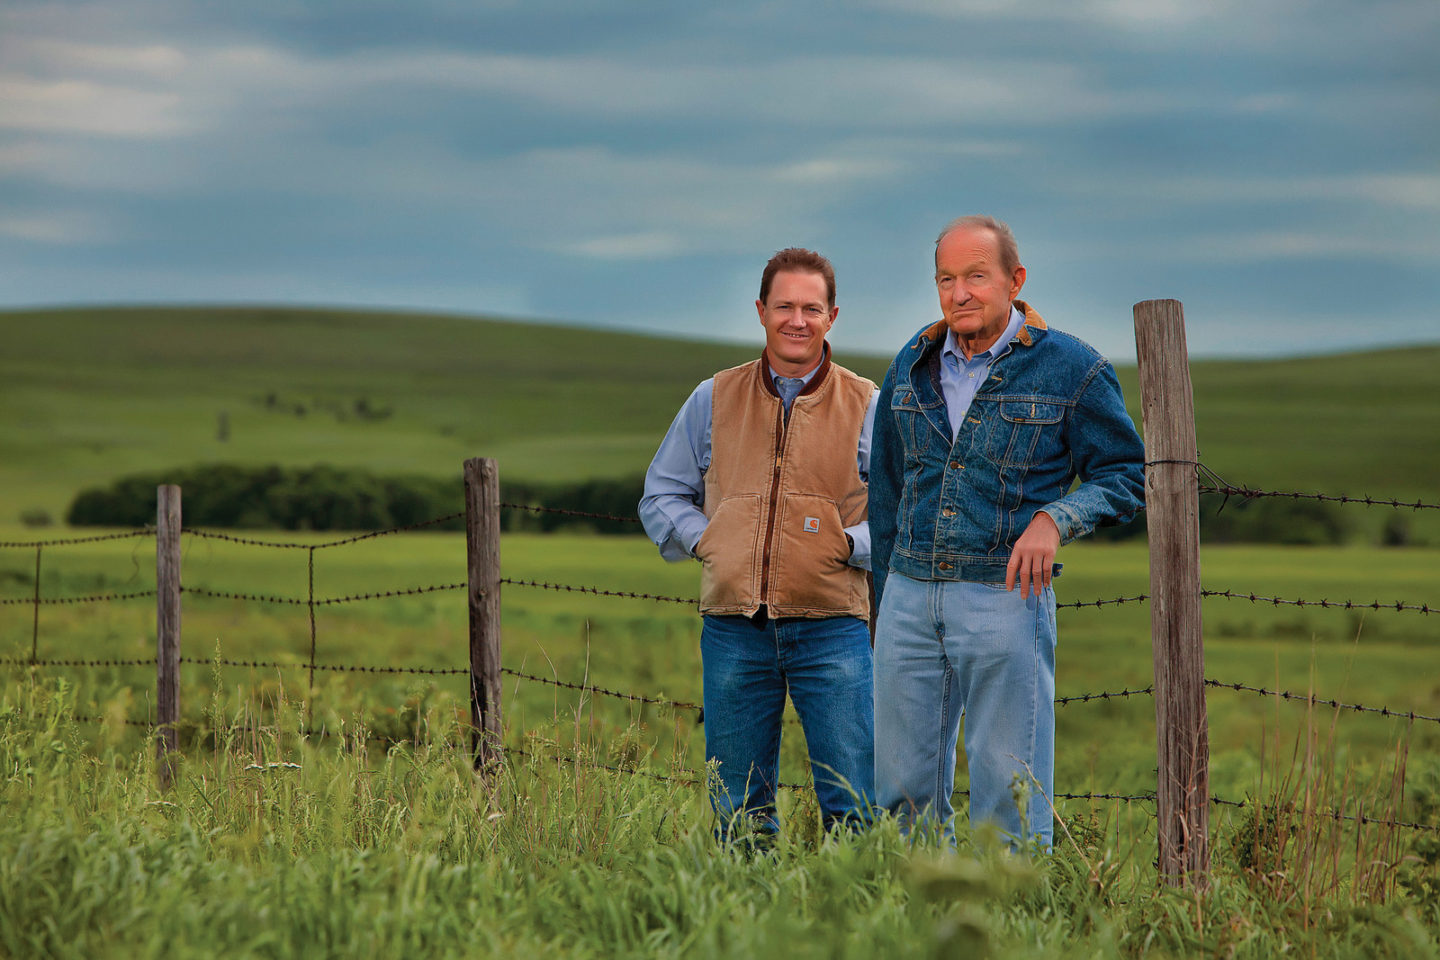 Two men standing in a field with a barbed wire fence behind them.